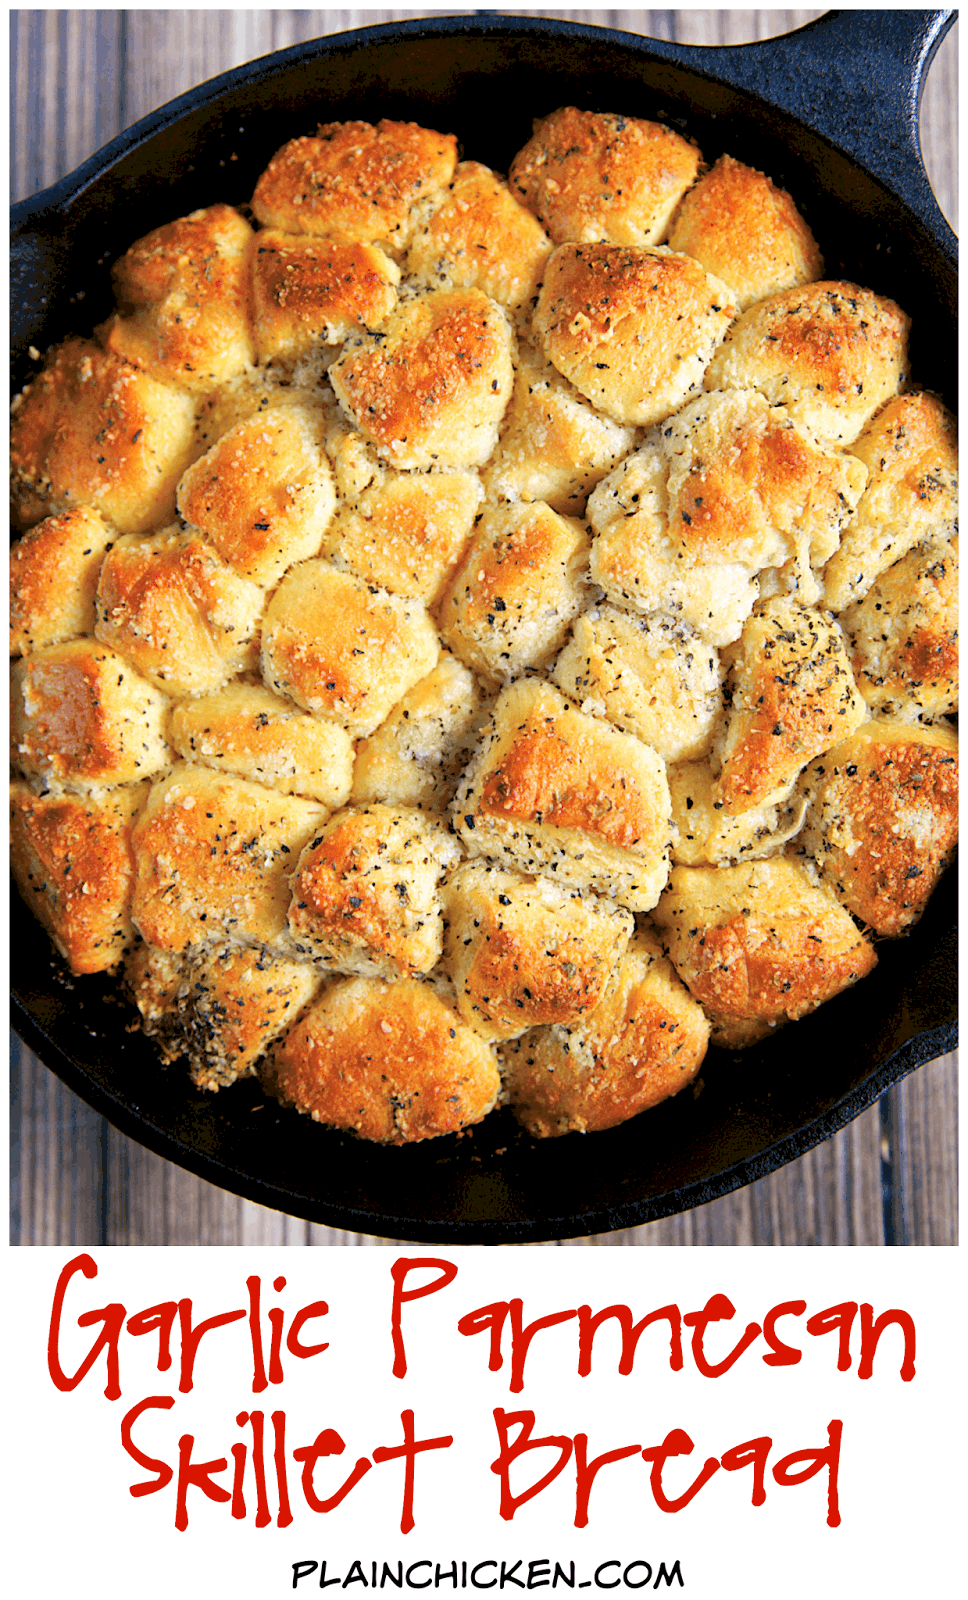 Garlic Parmesan Skillet Bread - refrigerated biscuits chopped and tossed in butter, garlic, italian seasoning and parmesan cheese. Baked in a small iron skillet. Great with pasta. Can also use as an appetizer with some warm pizza sauce. YUM!! I can make a meal out of this yummy bread!